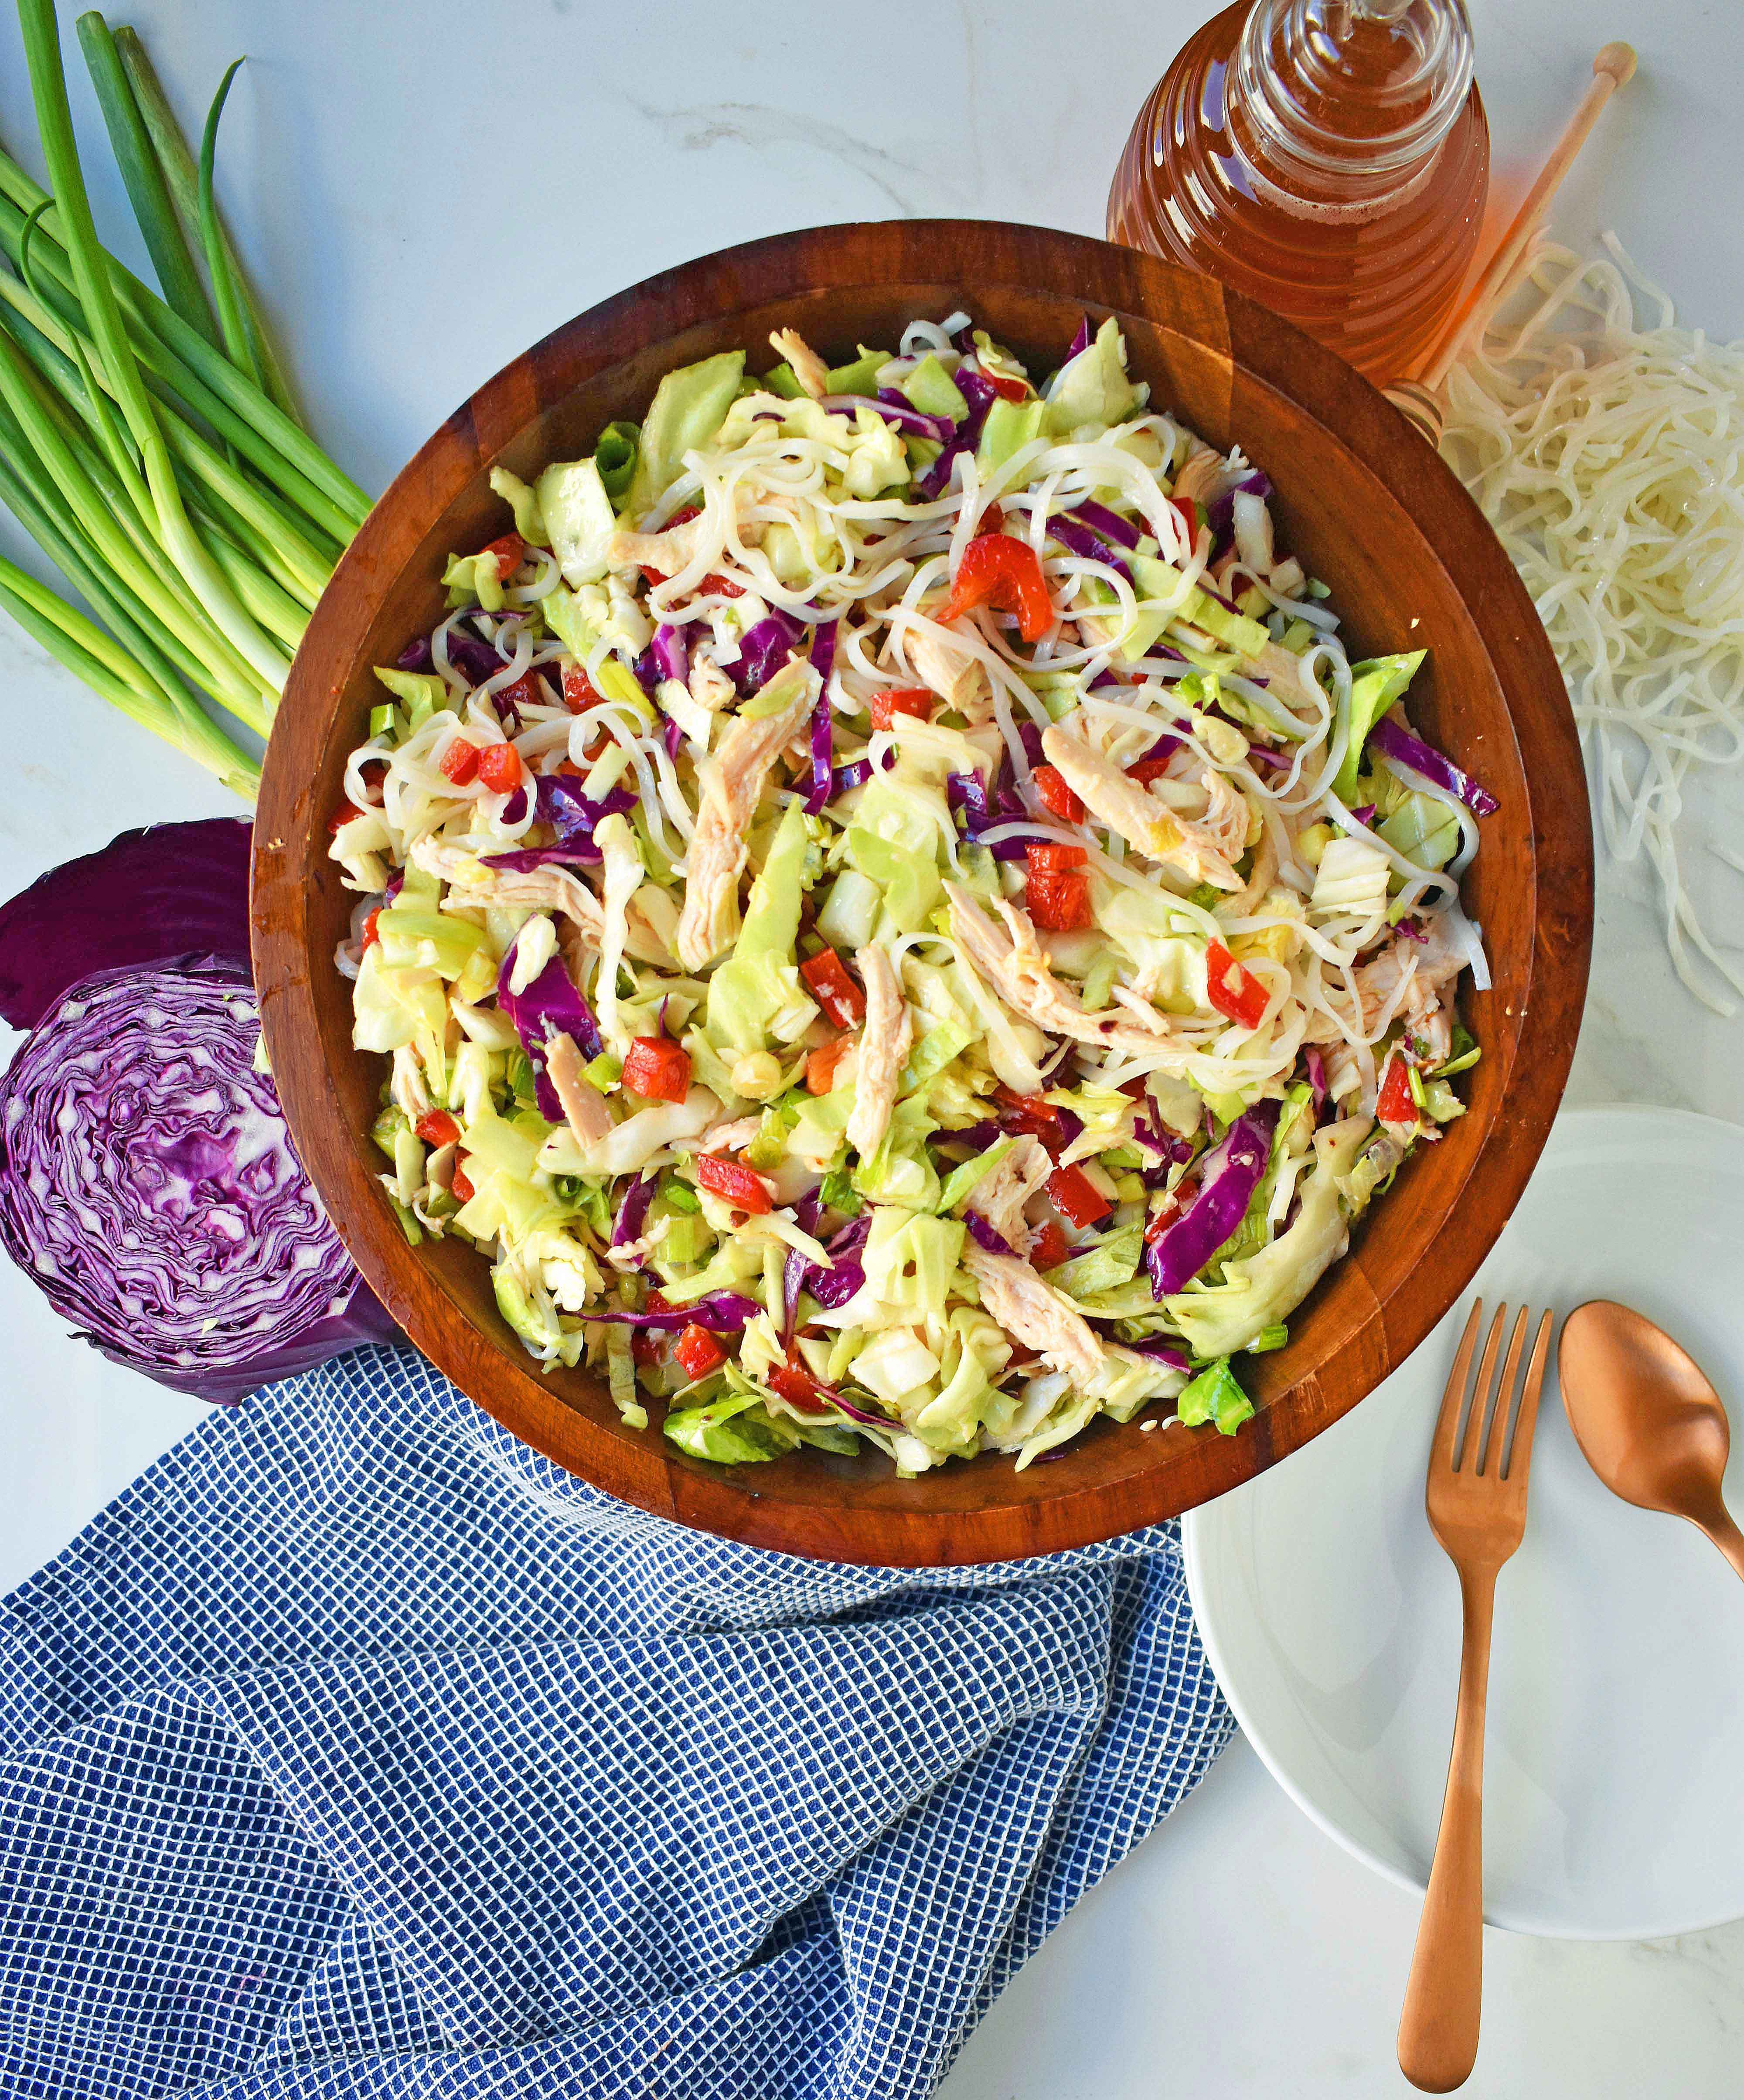 Chinese Chicken Salad with crunchy cabbage, tender chicken, green onions, red pepper, almonds, all tossed in a honey ginger dressing. May add rice or soba noodles if you so desire. A gluten- free and dairy-free Chinese Chicken Noodle Salad. A healthy salad that is perfect for a potluck. www.modernhoney.com